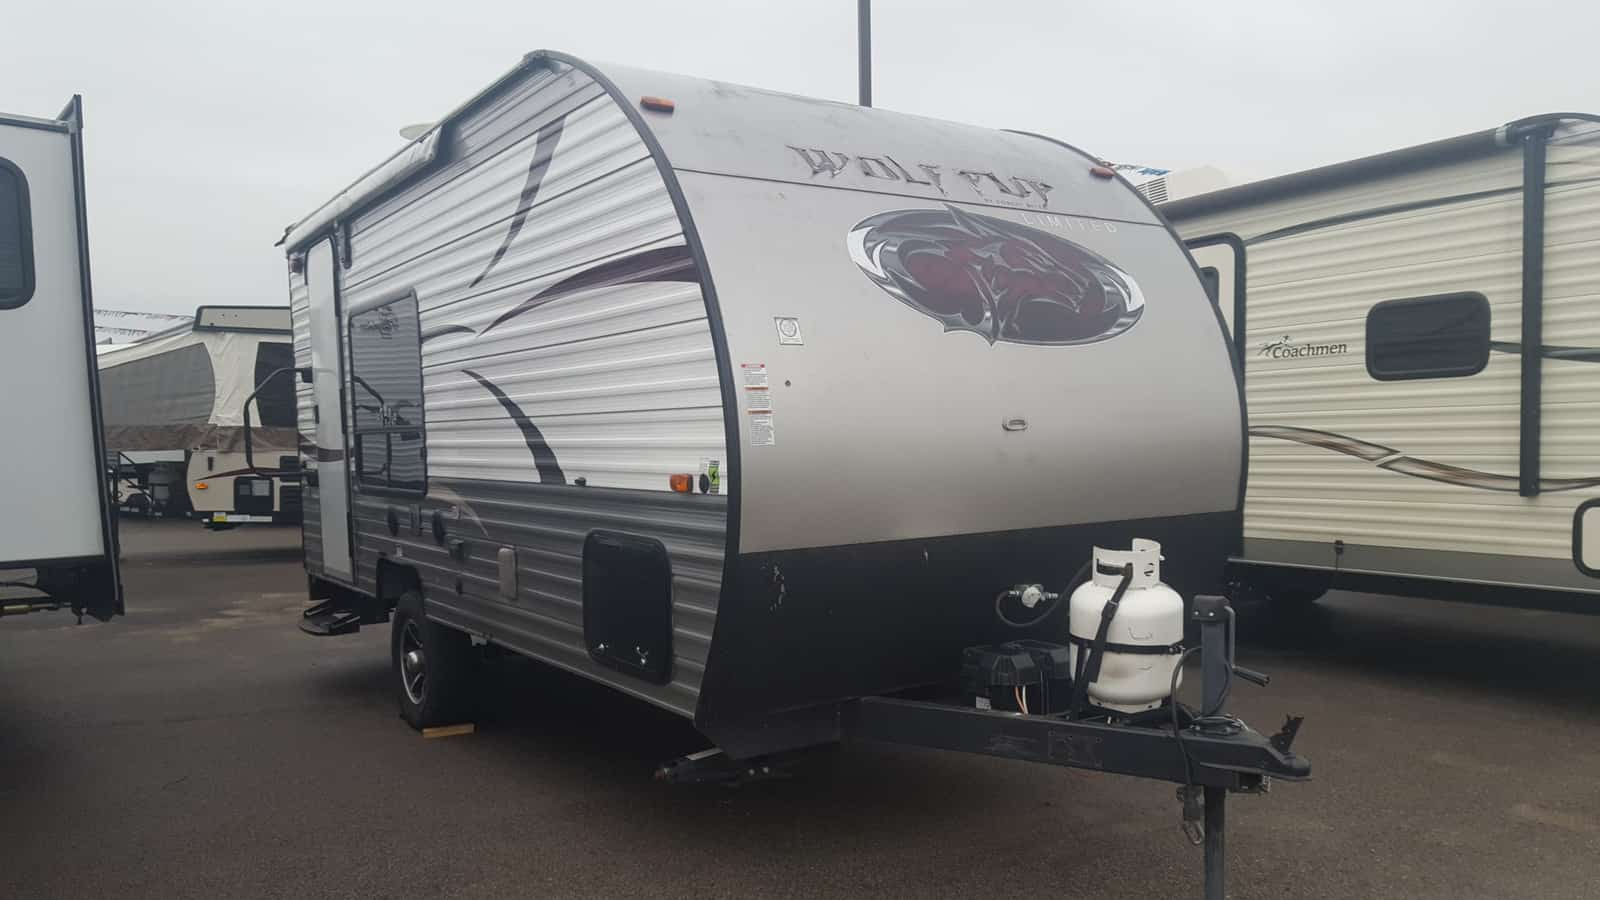 USED 2015 Forest River CHEROKEE WOLF PUP 17RP - American RV